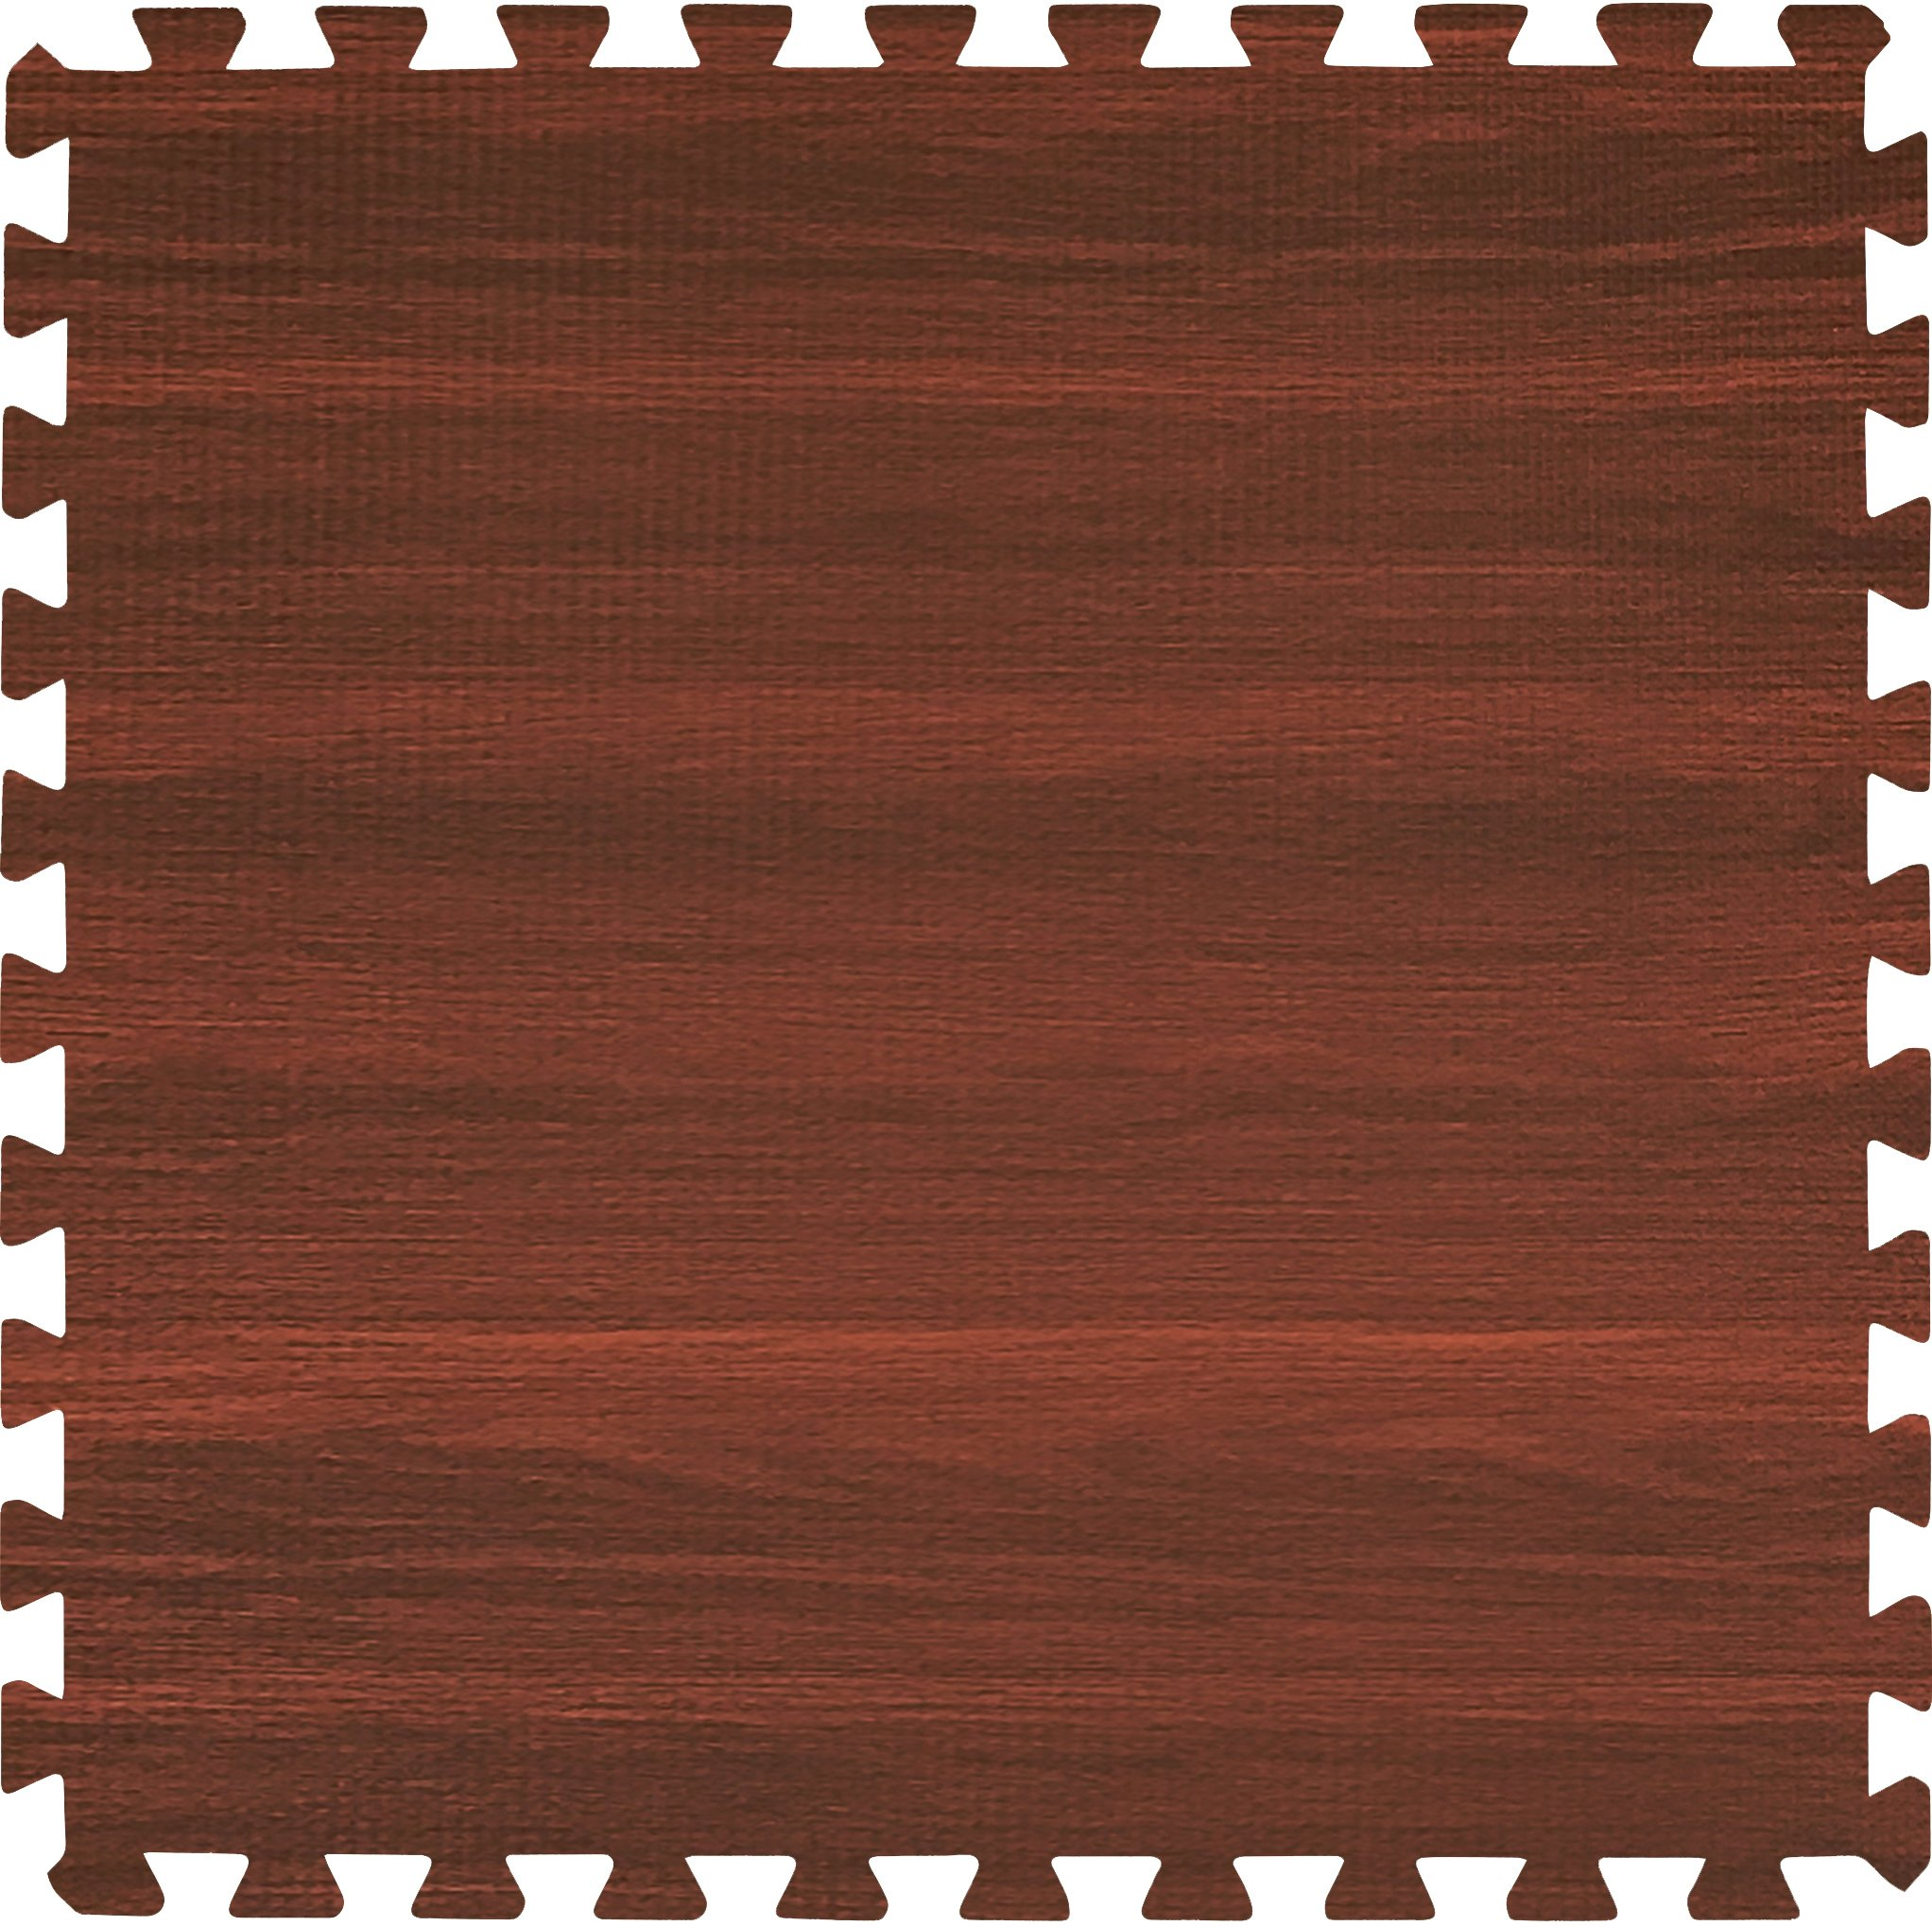 Sorbus Wood Floor Mats Foam Interlocking Wood Mats Each Tile 4 Square Feet 3/8-Inch Thick Puzzle Wood Tiles with Borders – for Home Office Playroom Basement (6 Tiles 24 Sq ft, Wood Grain - Cherry) by Sorbus (Image #6)